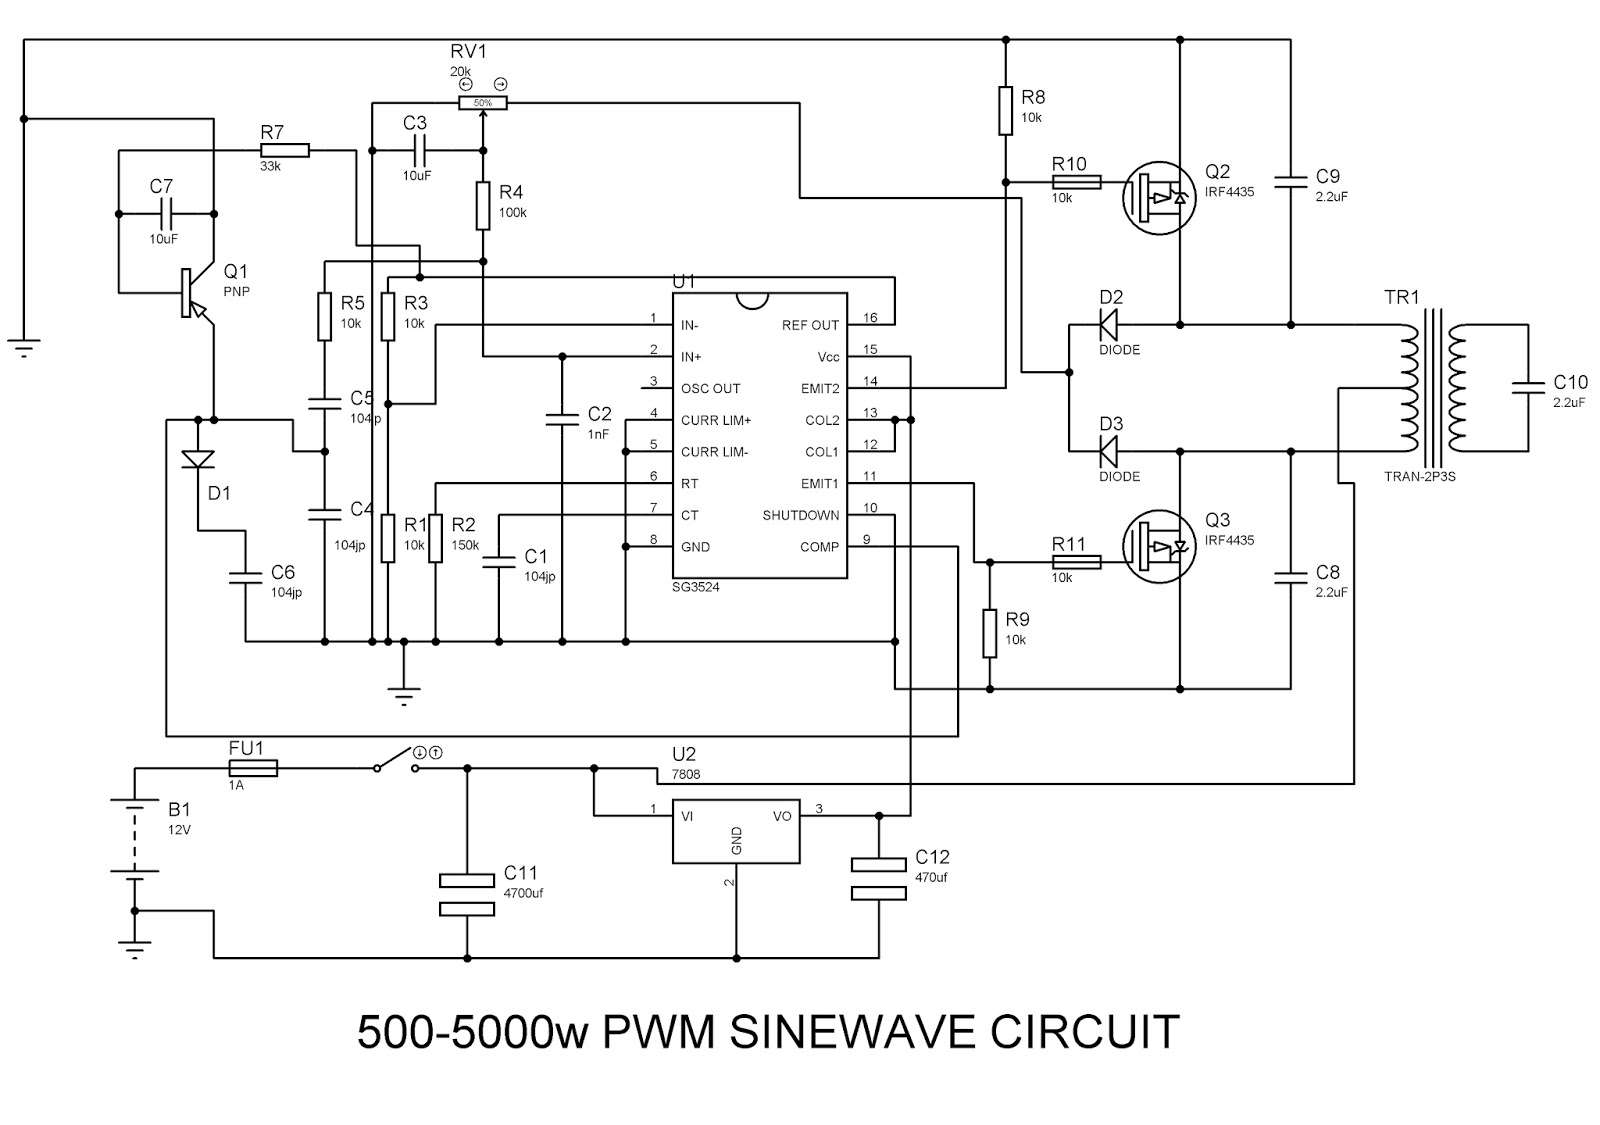 inverter sg3524 circuit diagram